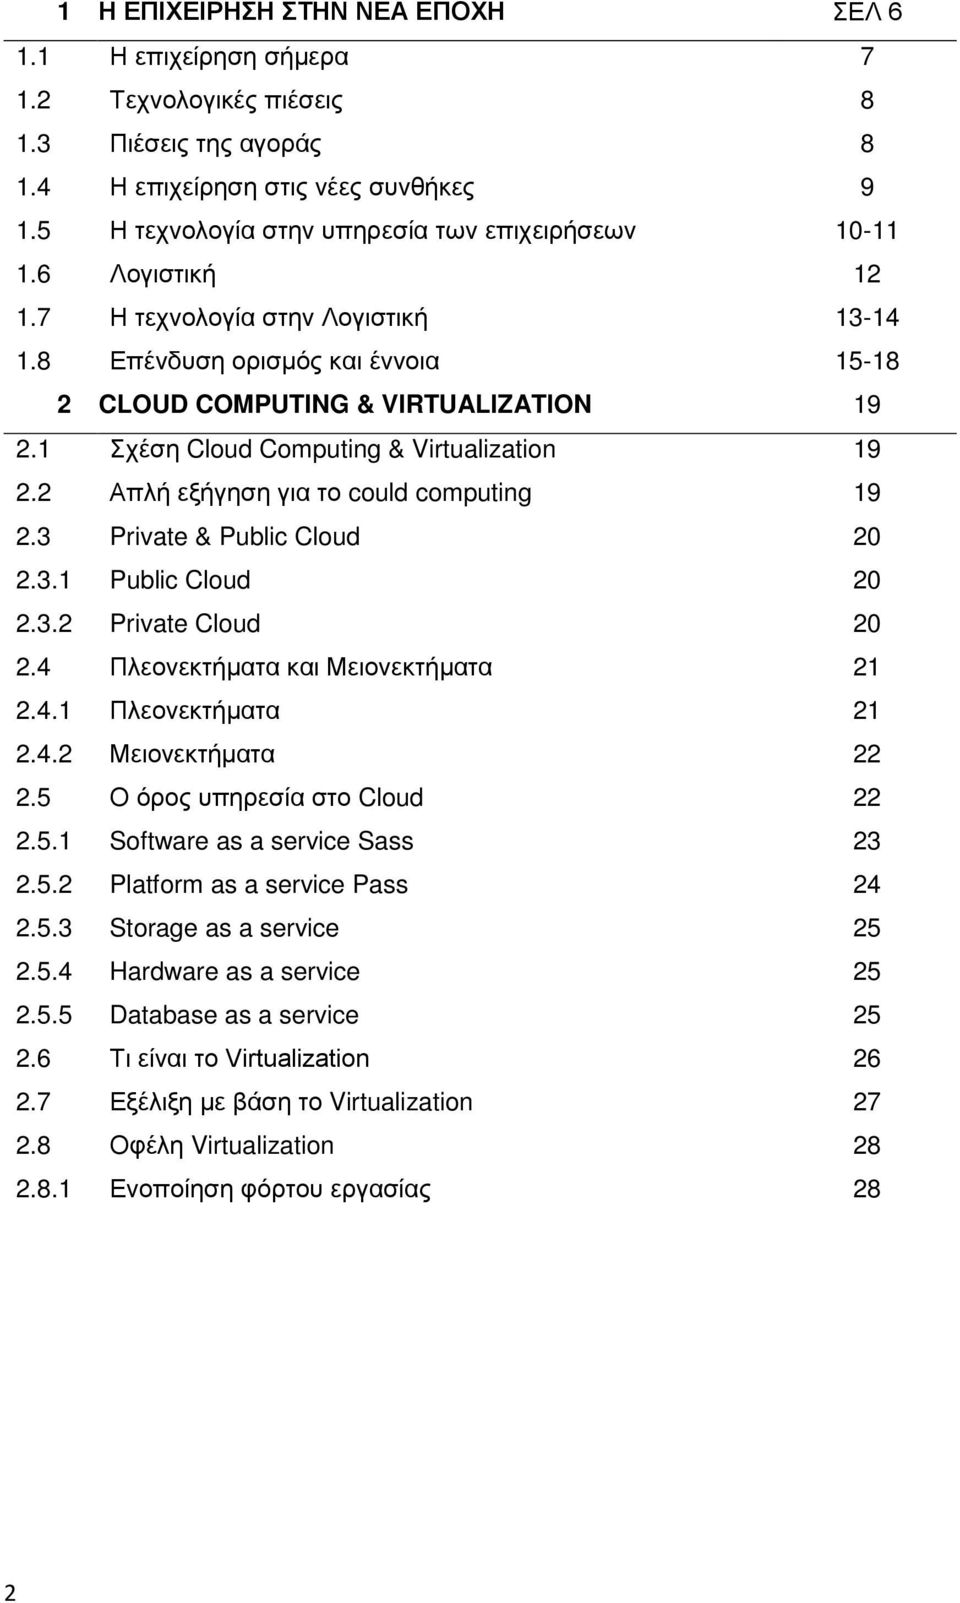 1 Σχέση Cloud Computing & Virtualization 19 2.2 Απλή εξήγηση για το could computing 19 2.3 Private & Public Cloud 20 2.3.1 Public Cloud 20 2.3.2 Private Cloud 20 2.